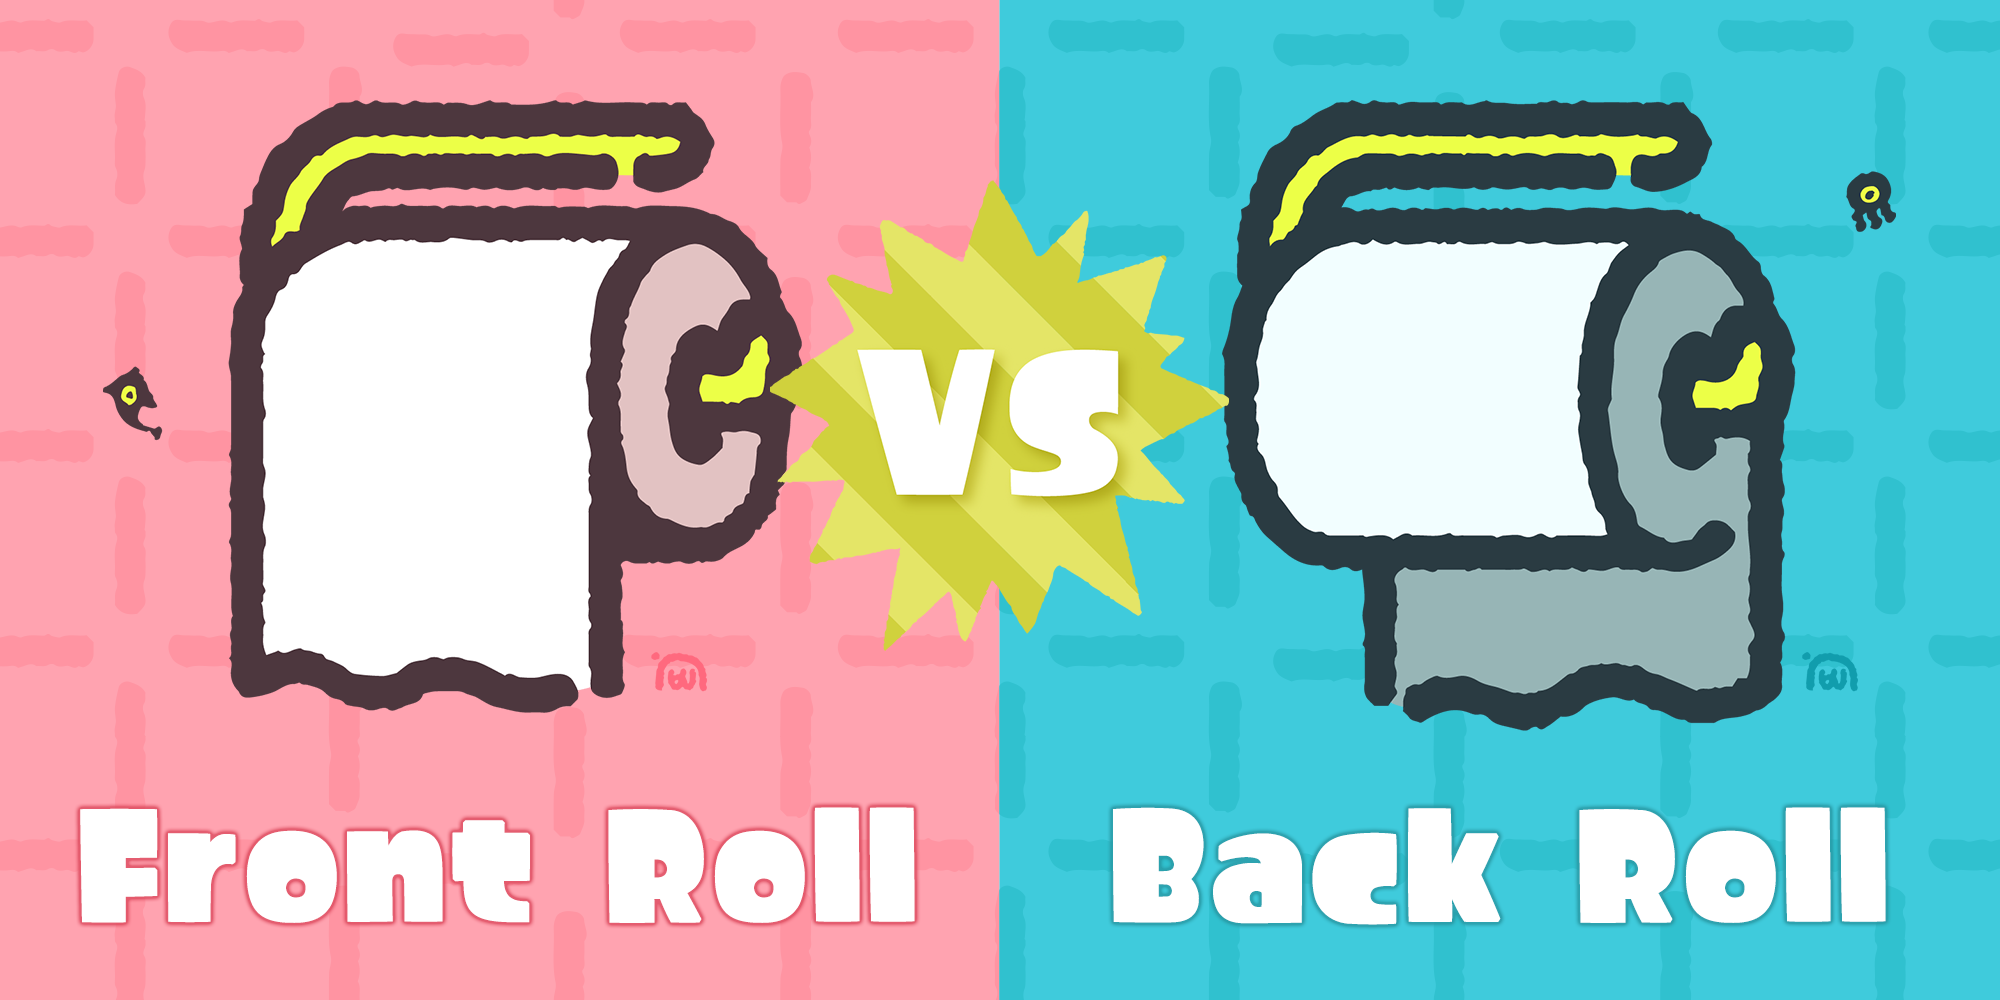 Front Roll vs. Back Roll